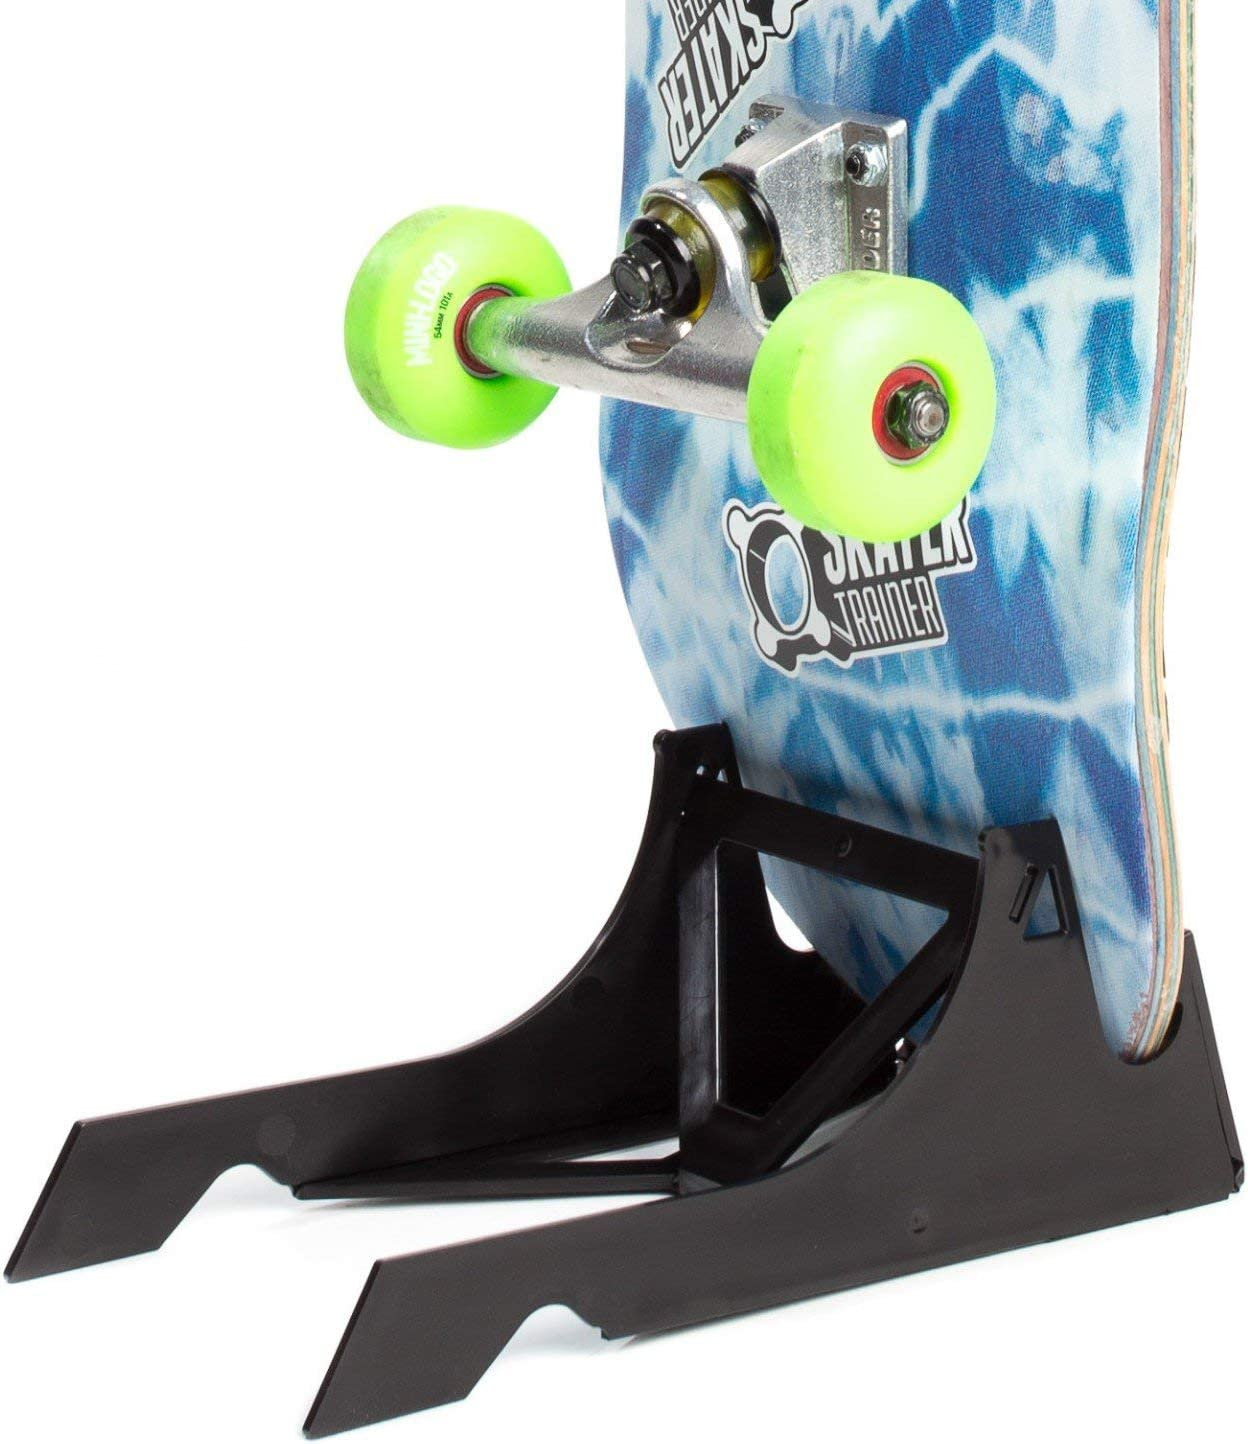 SKATERTRAINER A Place for Your Skateboard, Store or Display in Style with an Original Skateboard Stand   The Origami Skate Rack by Skater Trainers